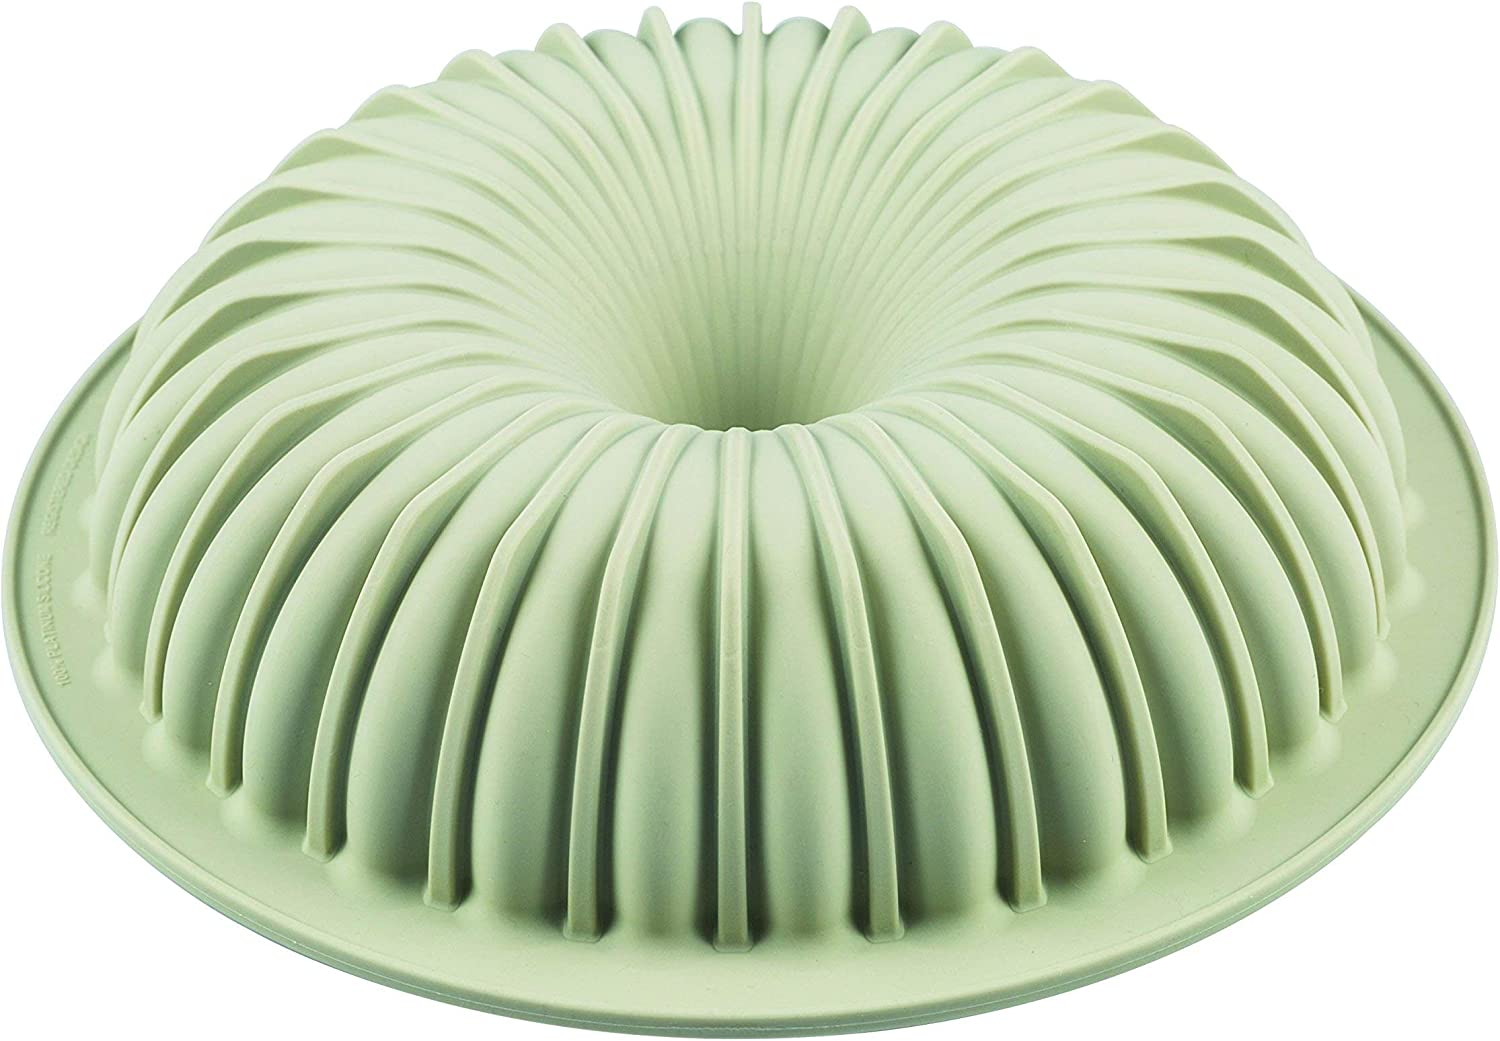 Silikomart 20.362.13.0065 Raggio Silicone Mold, Flexible Bundt Cake Pan with 3D Technology for Ribbed Detailing, Easily Unmolds, Oven, Microwave, Freezer and Dishwasher Safe, 51-3/4-Fluid Ounces